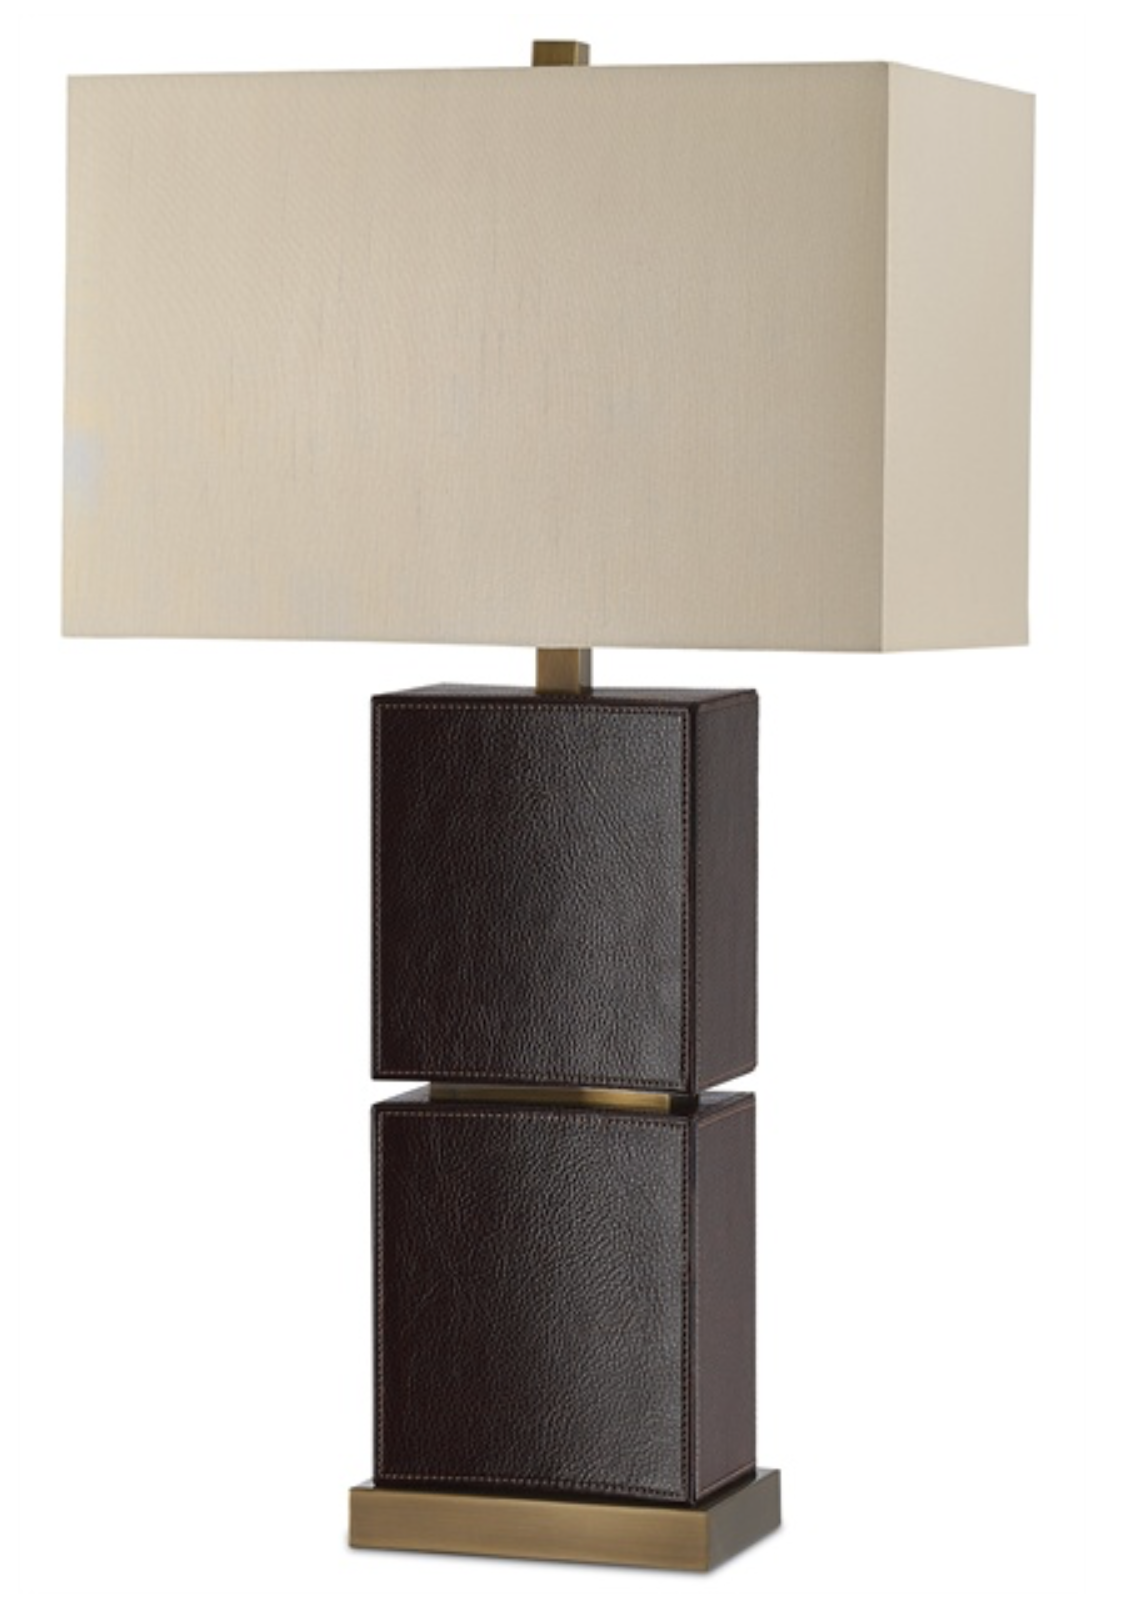 Dark Brown Leather/Brass Table Lamp w/Linen Shade  18x10x32h  CC60100